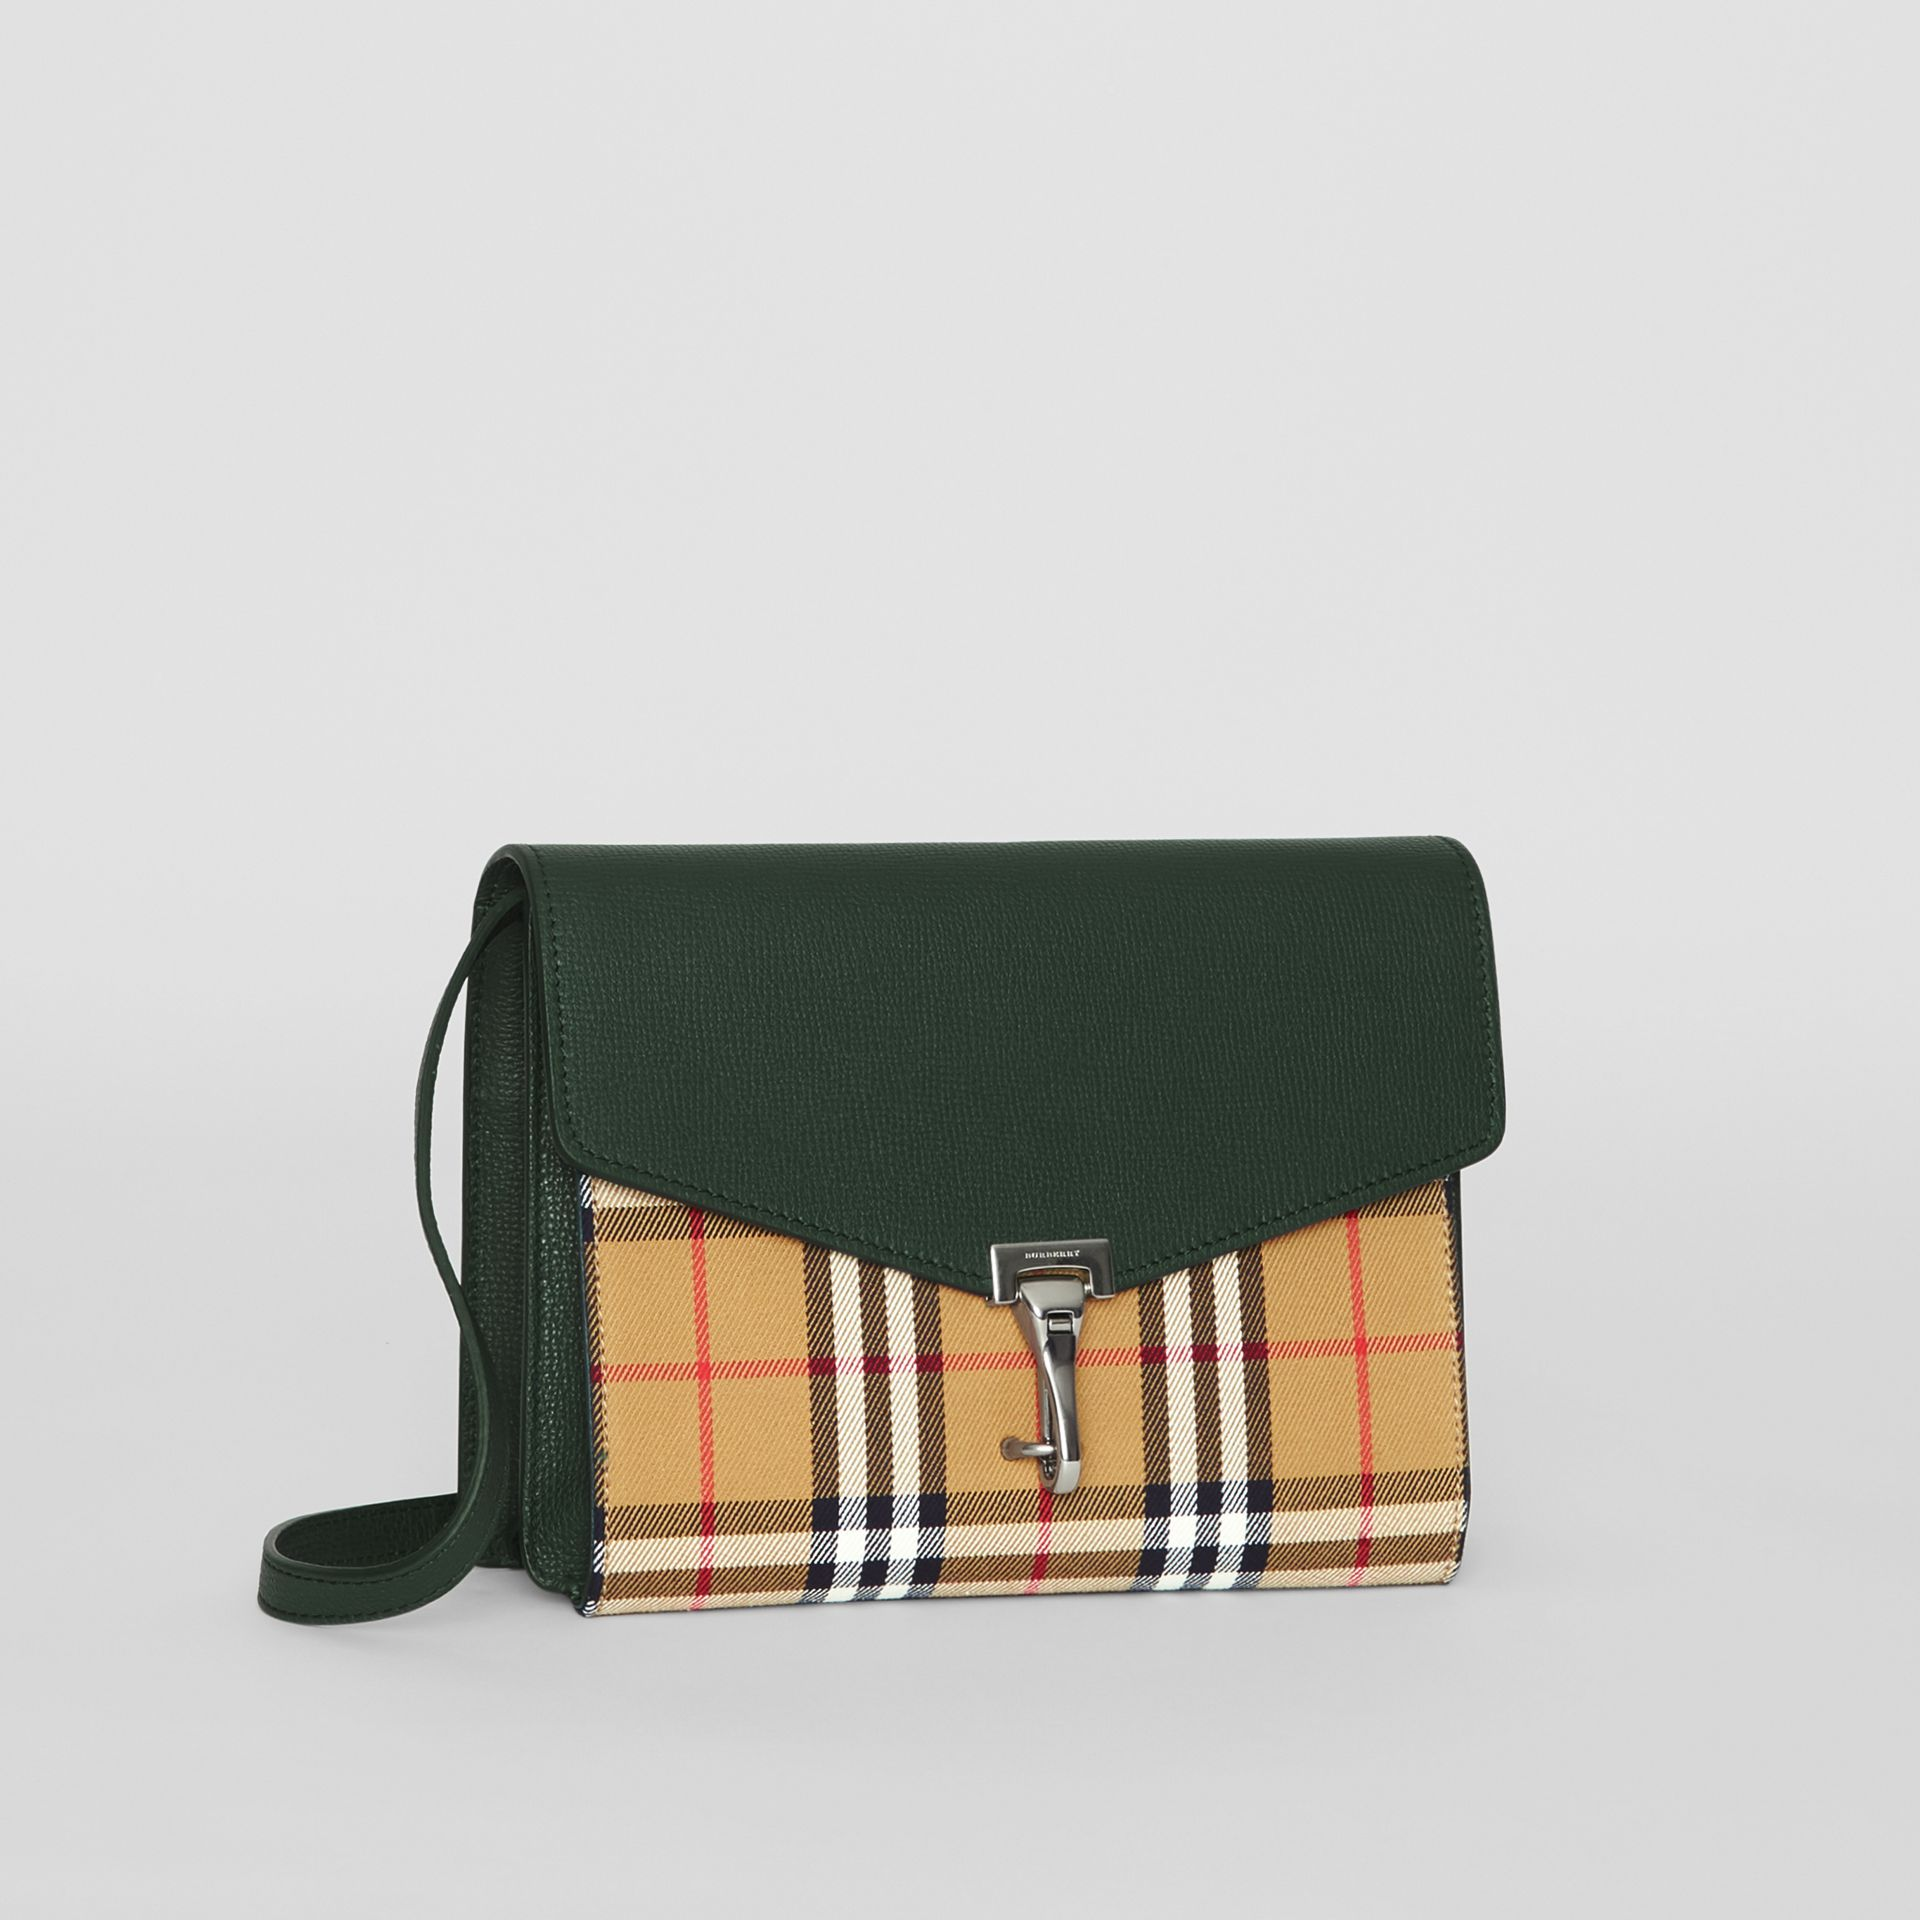 Small Vintage Check and Leather Crossbody Bag in Green - Women | Burberry - gallery image 6